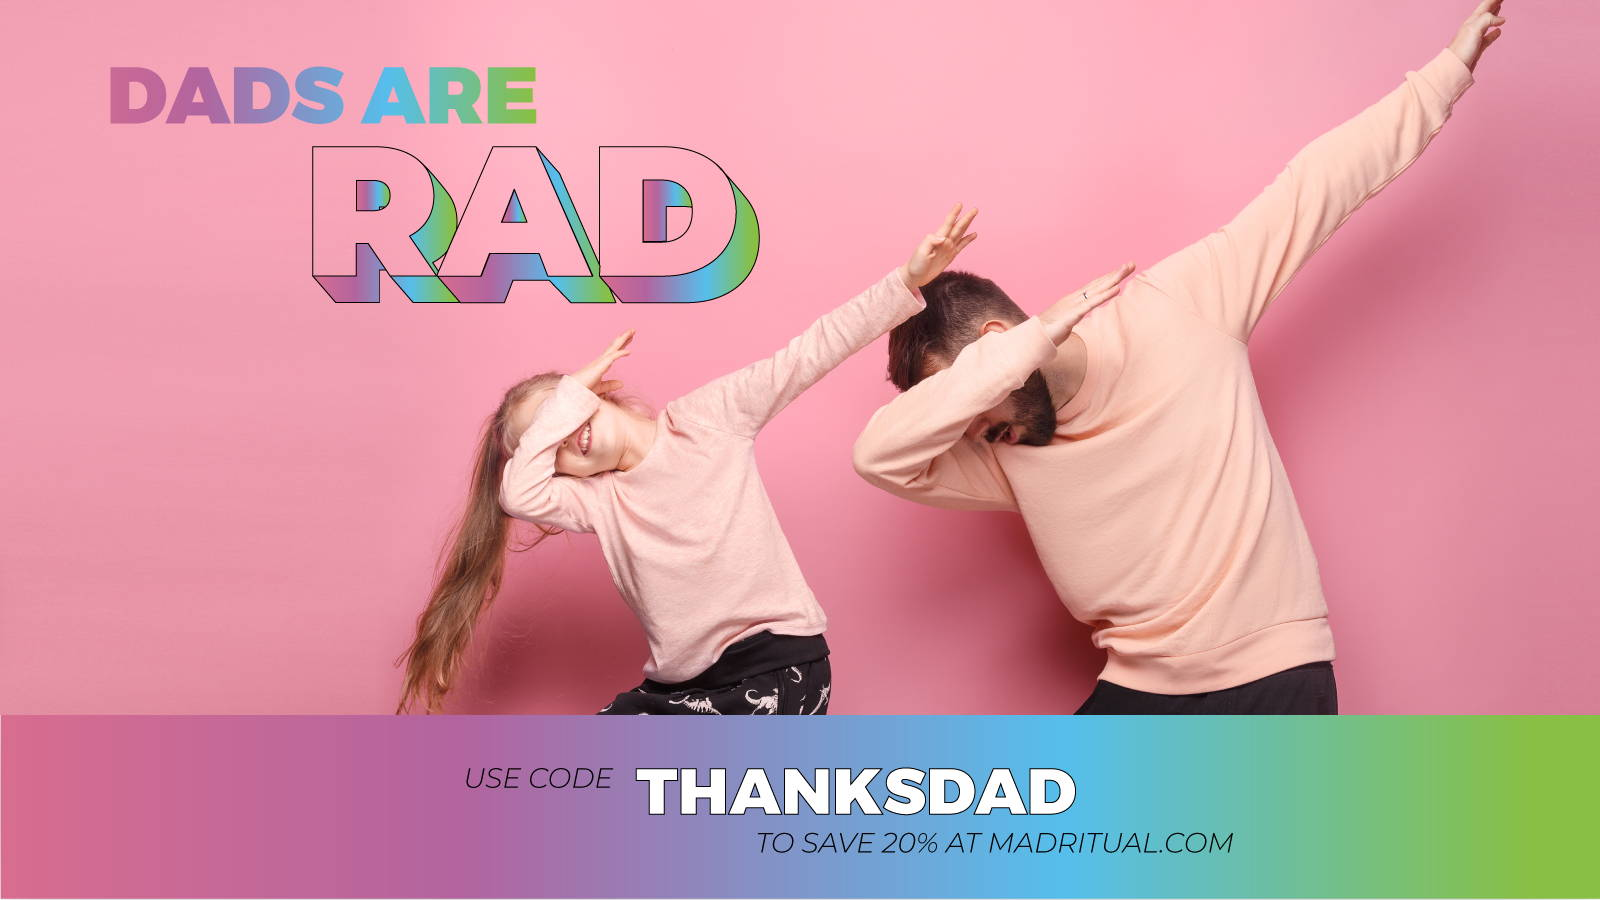 use code THANKSDAD to save 20% at madritual.com